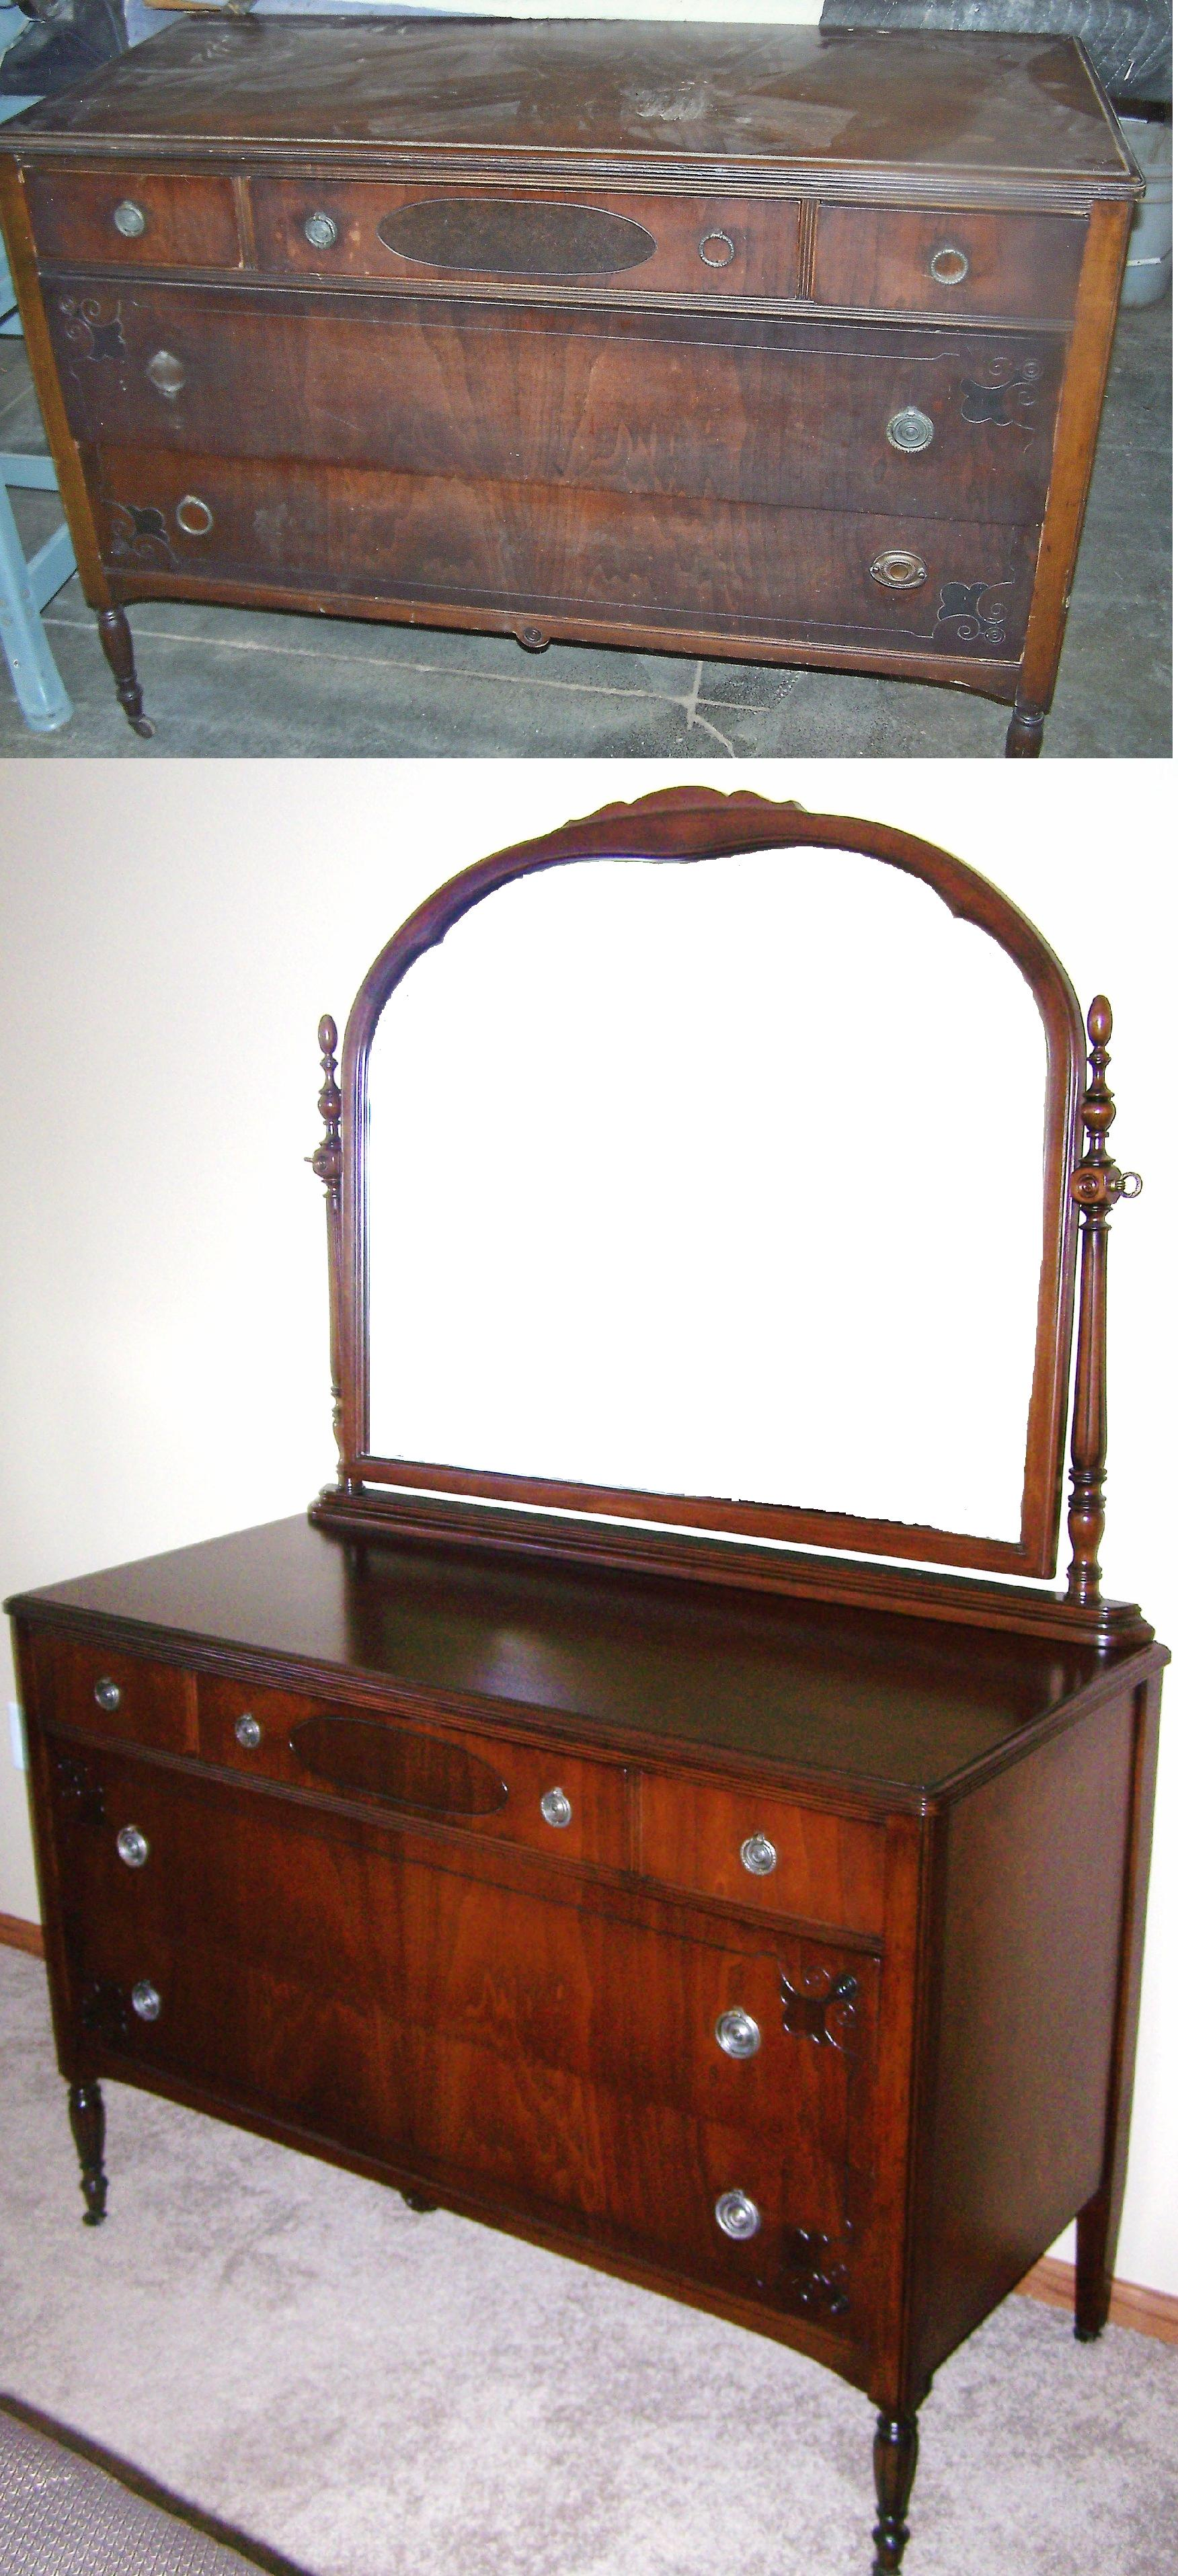 Dresser With Mirror We Completely Restored To The Original Color And Sheen As The Customer Desired The Missing Pulls And Back Plates Were Duplicated And Finished To Blend With The Originals